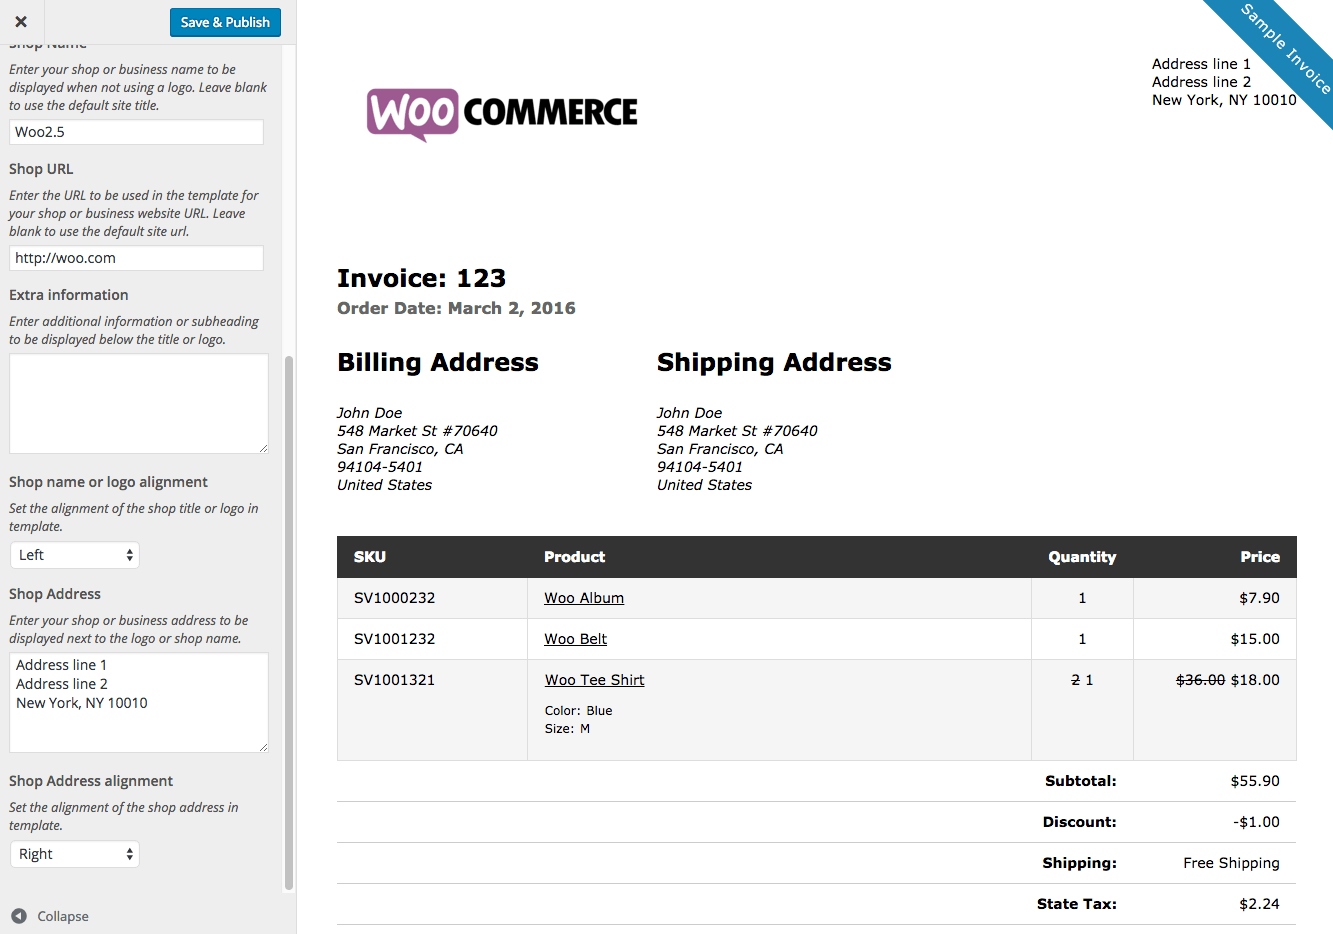 Ediblewildsus  Outstanding Print Invoices Amp Packing Lists  Woocommerce With Entrancing Woocommerce Print Invoices  Packing Lists Customizer With Extraordinary Commercial Invoice Export Also Car Sale Invoice Sample In Addition Quickbooks Invoice Tutorial And Commerial Invoice As Well As Get Harvest Invoice Additionally Fraudulent Invoices From Woocommercecom With Ediblewildsus  Entrancing Print Invoices Amp Packing Lists  Woocommerce With Extraordinary Woocommerce Print Invoices  Packing Lists Customizer And Outstanding Commercial Invoice Export Also Car Sale Invoice Sample In Addition Quickbooks Invoice Tutorial From Woocommercecom